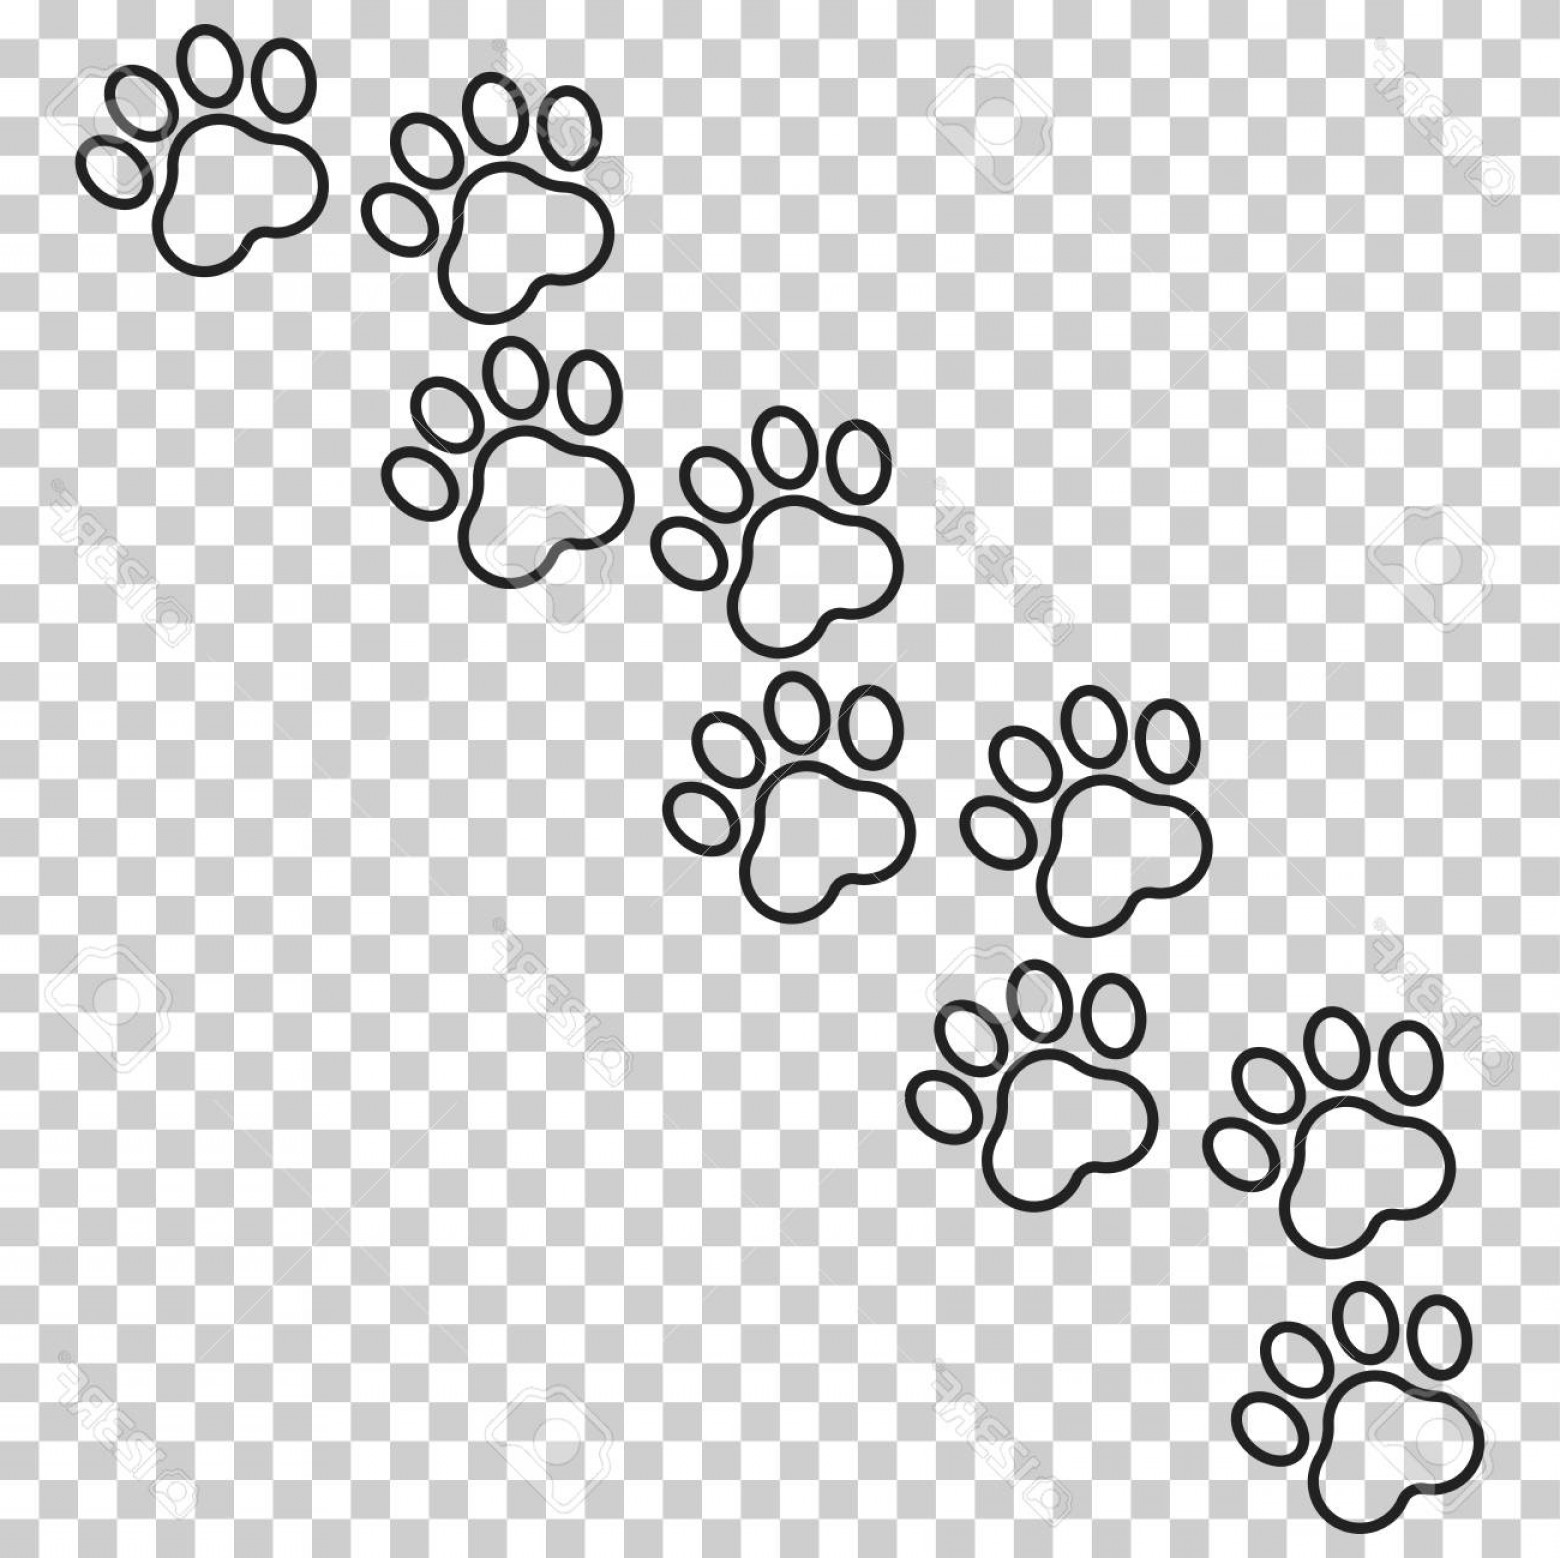 Cat Paw Print Vector at GetDrawings com | Free for personal